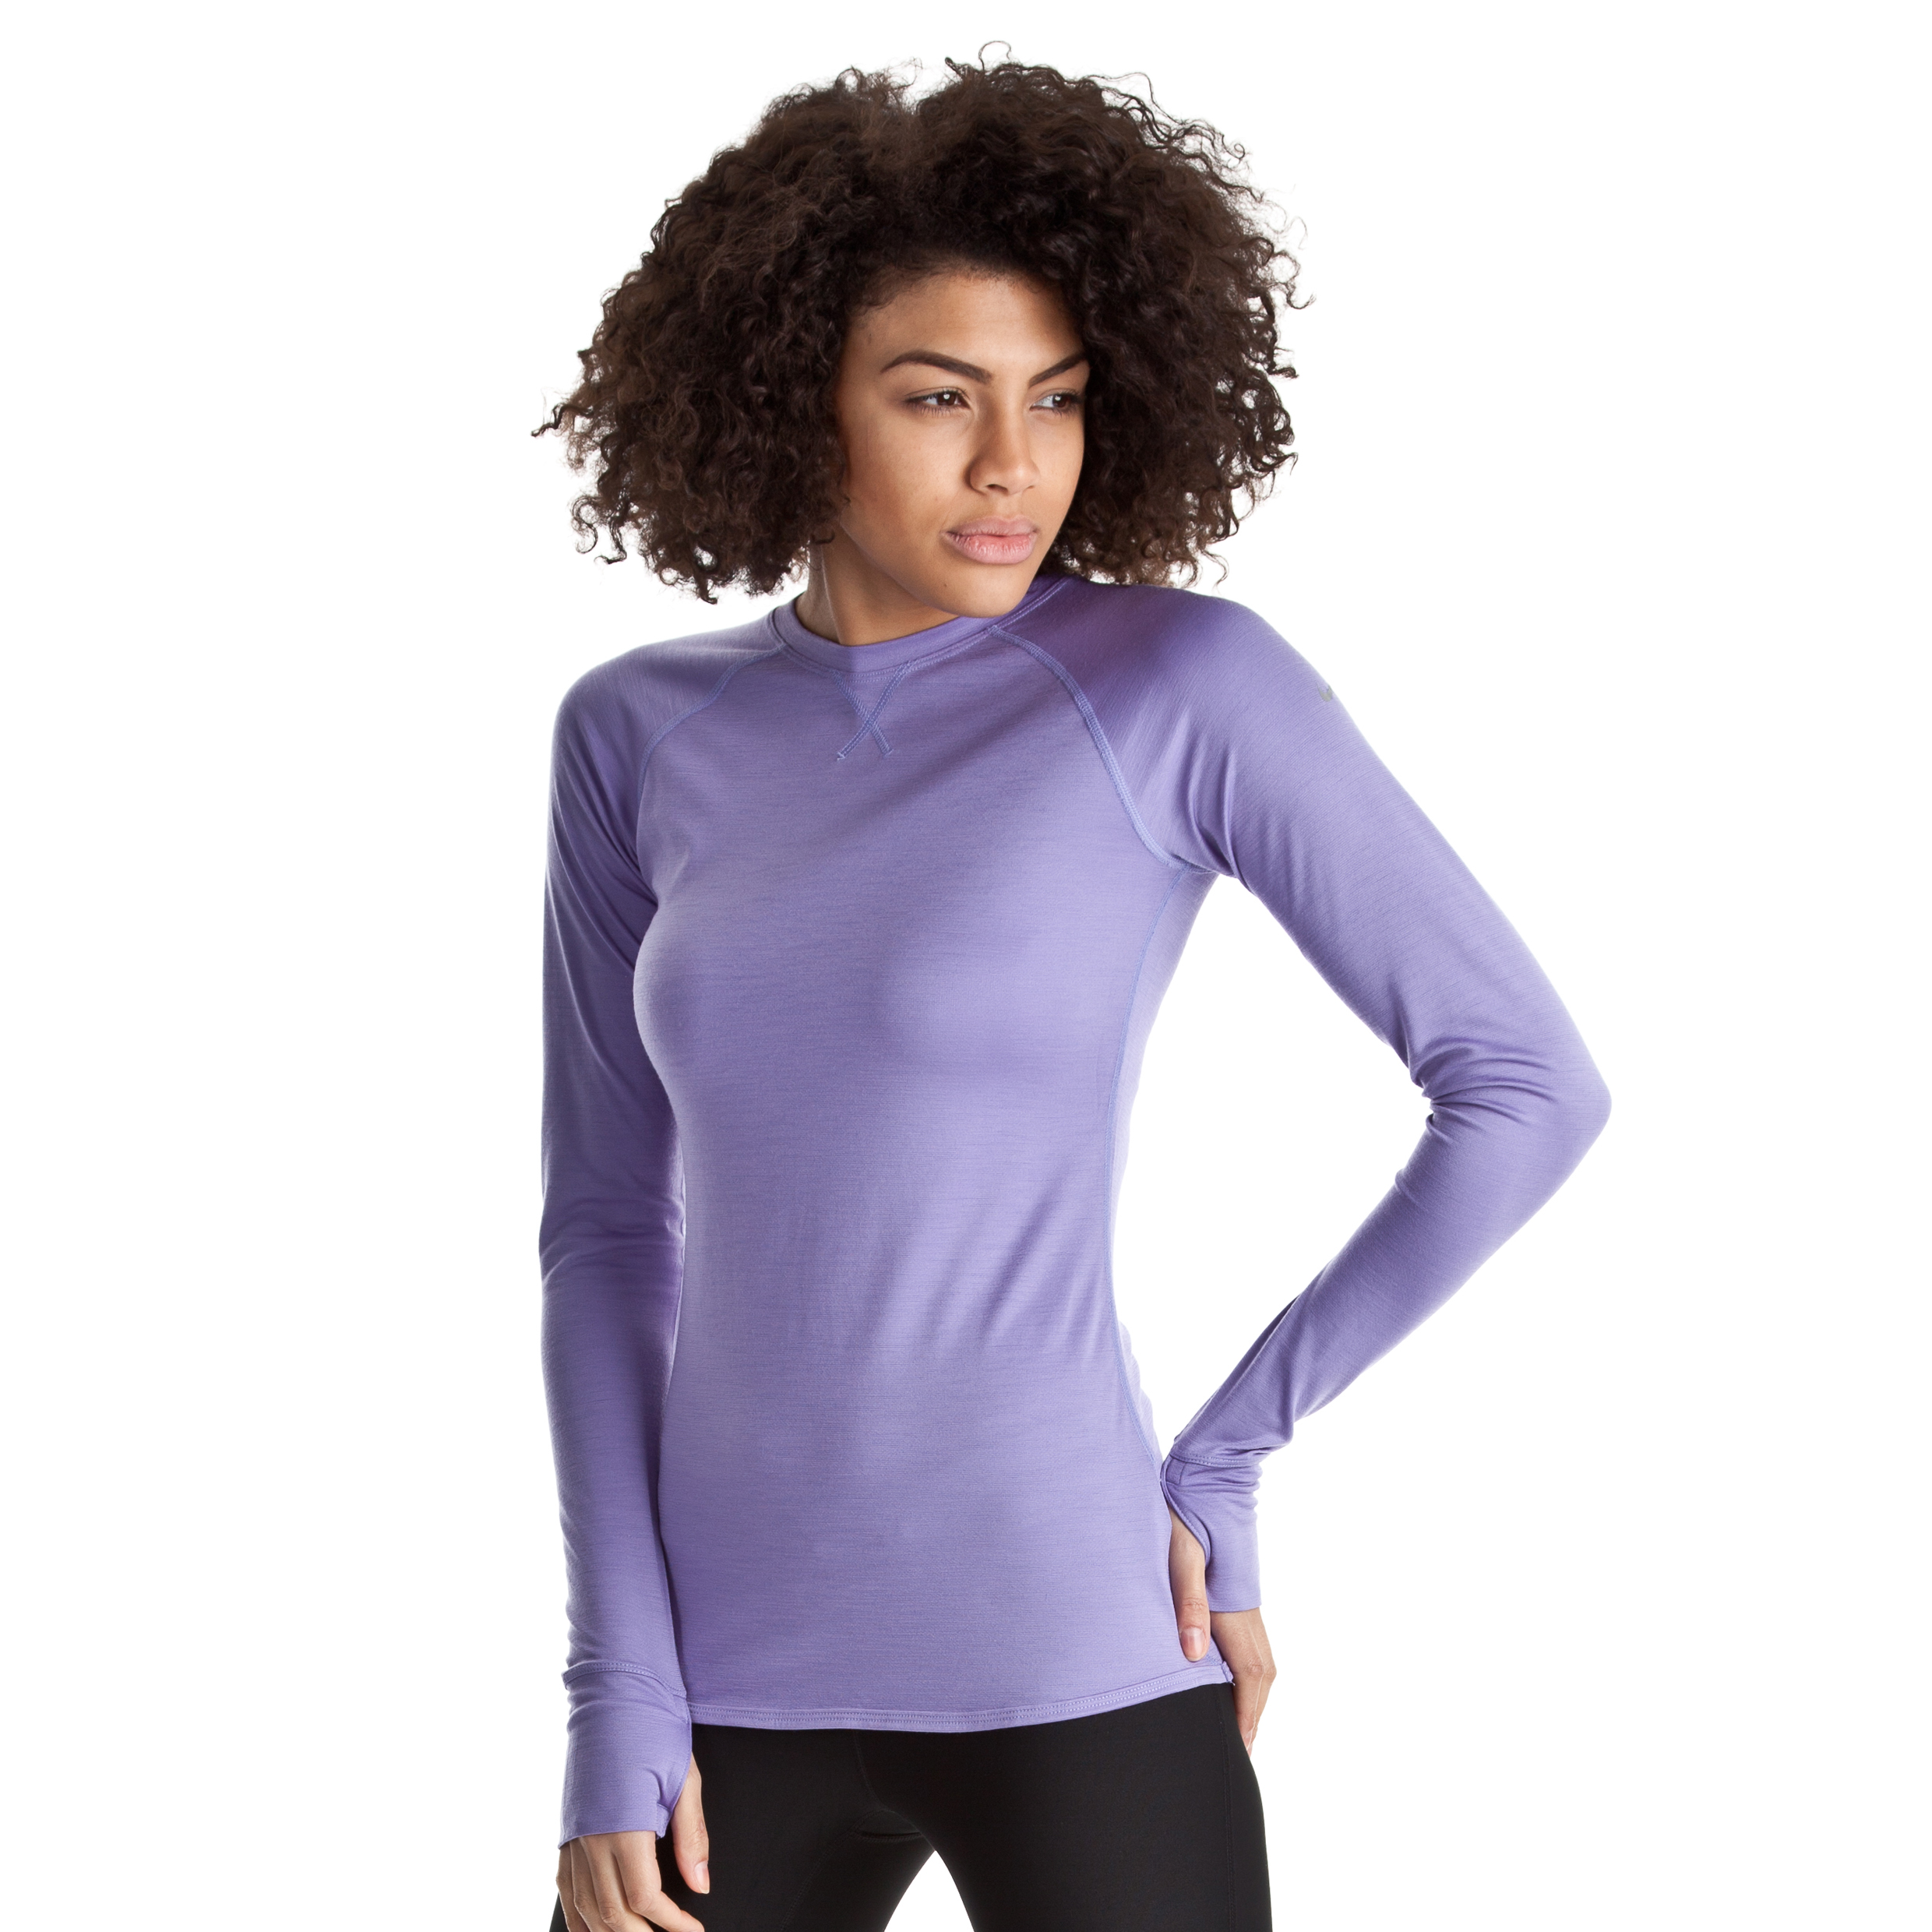 Nike Wool Crew LS Top - Medium Violet/Reflective Silv - Womens